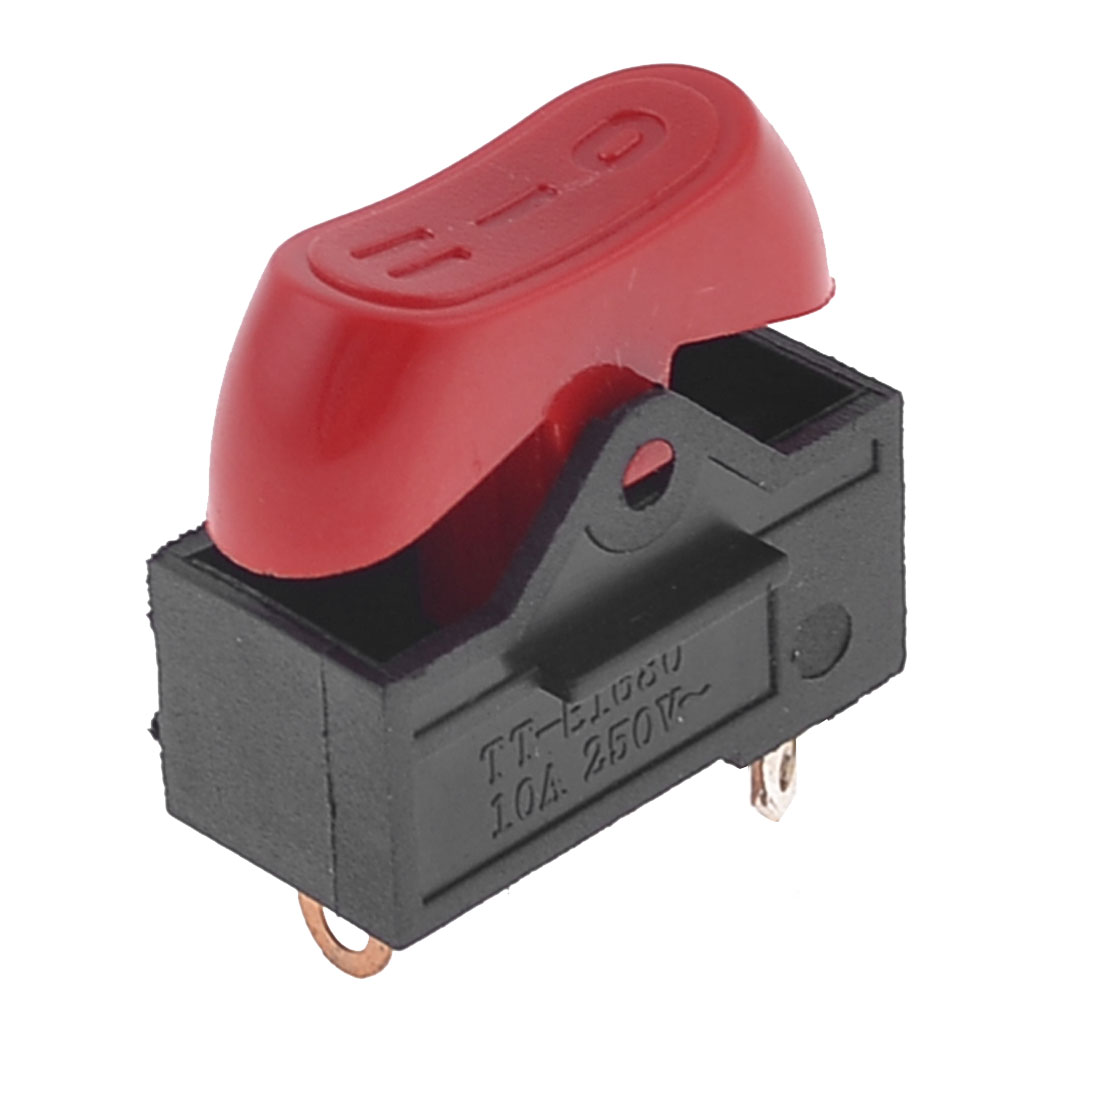 10A 250VAC 3 Position On/Off/On Hair Dryer Rocker Switch Black Red